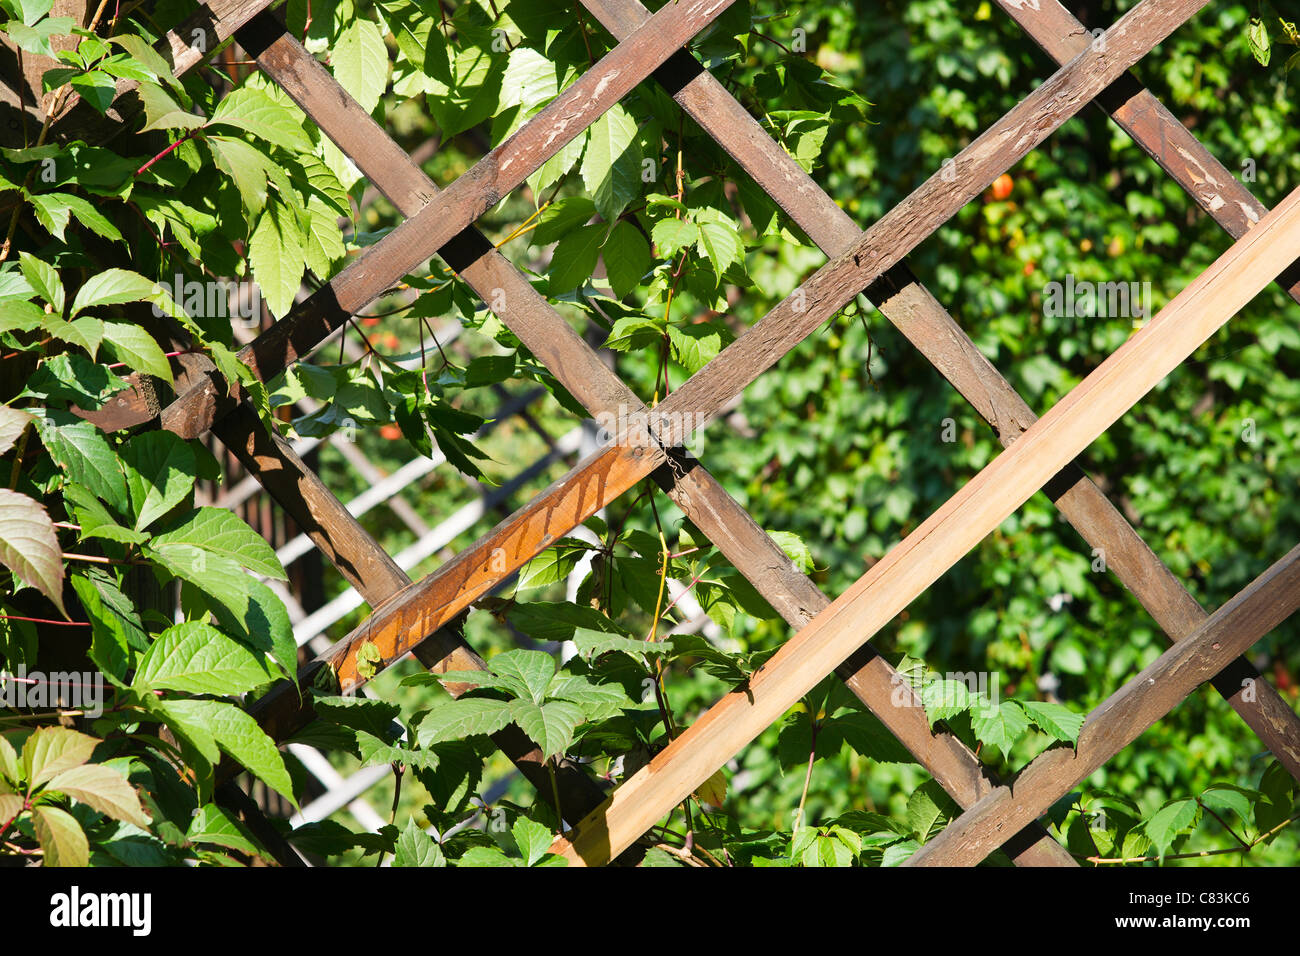 Close Up View Of A Garden Trellis. Wooden Planks And Green Leaves Open To  Sunshine